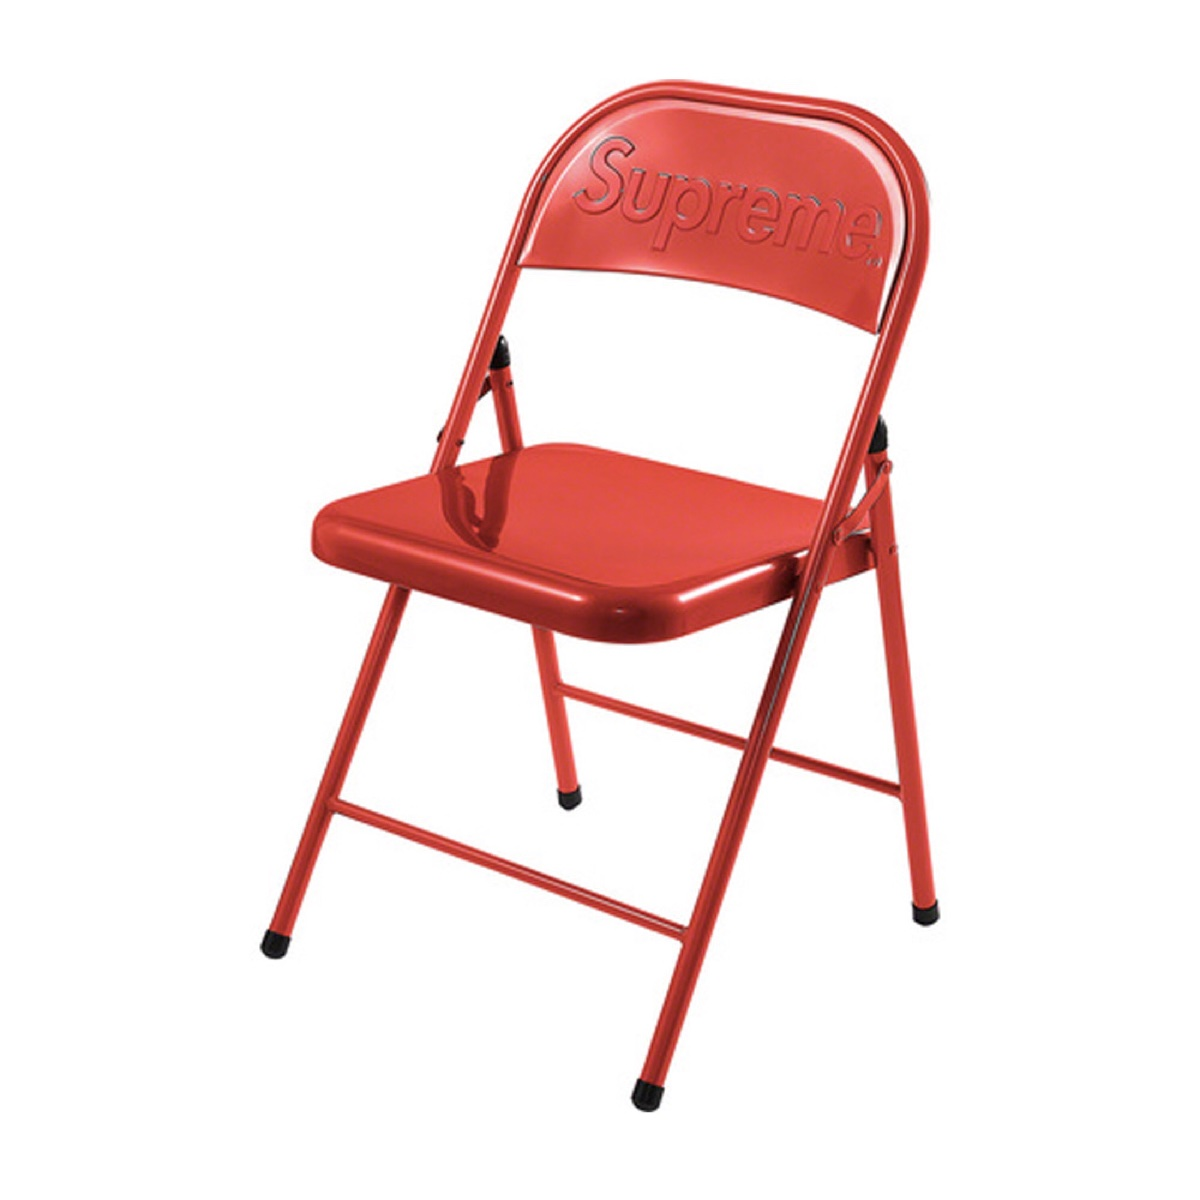 Supreme Metal Folding Chair Red